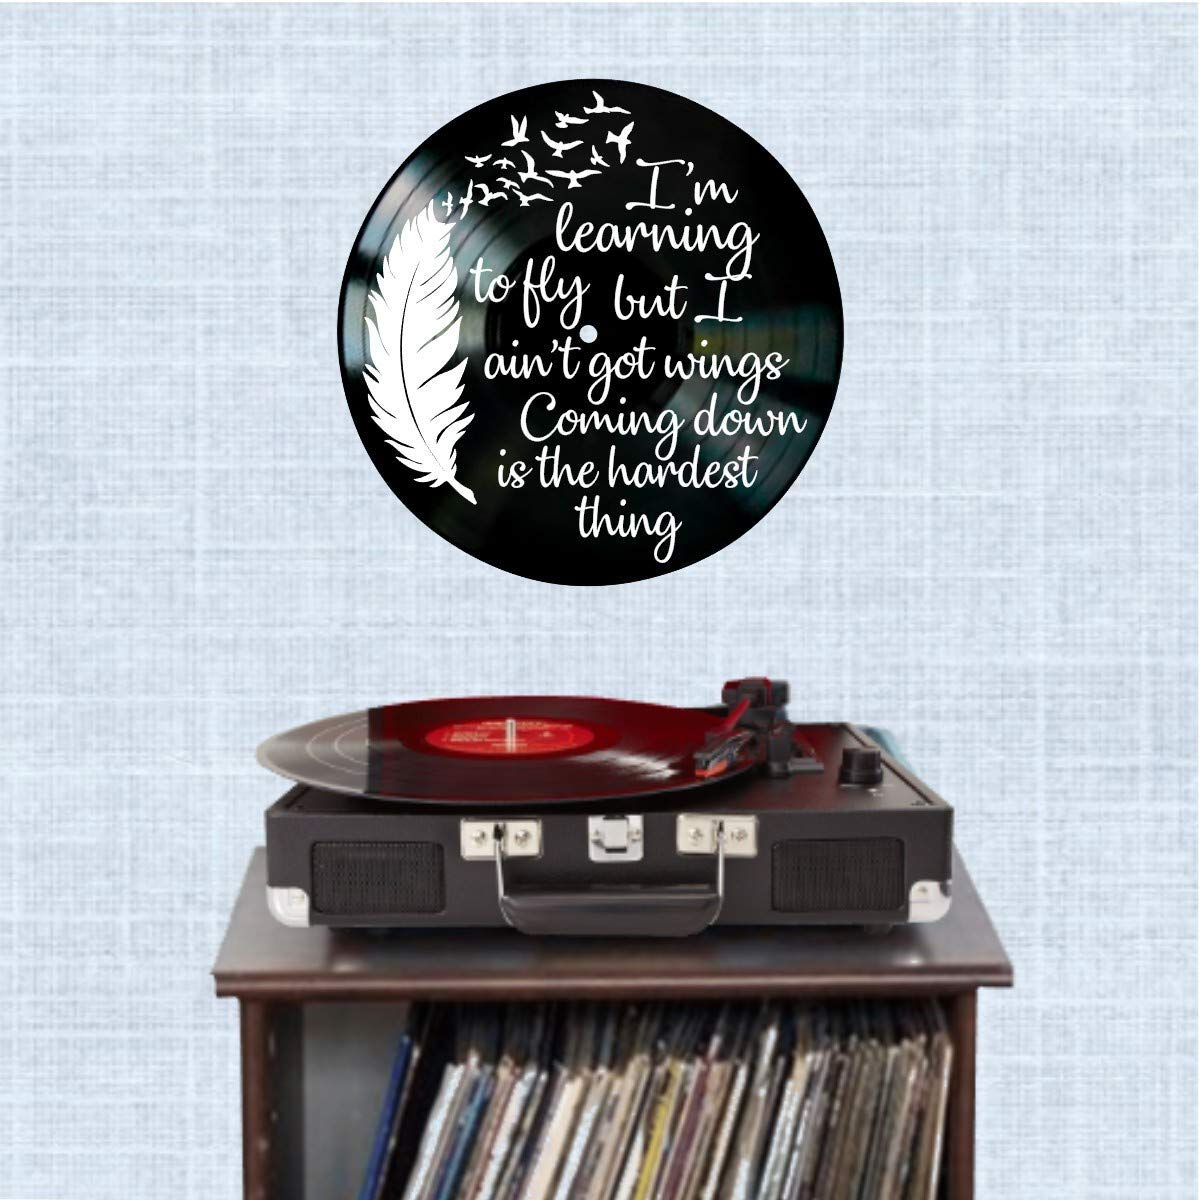 Learning to Fly song lyric art//inspired by Tom Petty//Vinyl Record Album Wall Decor